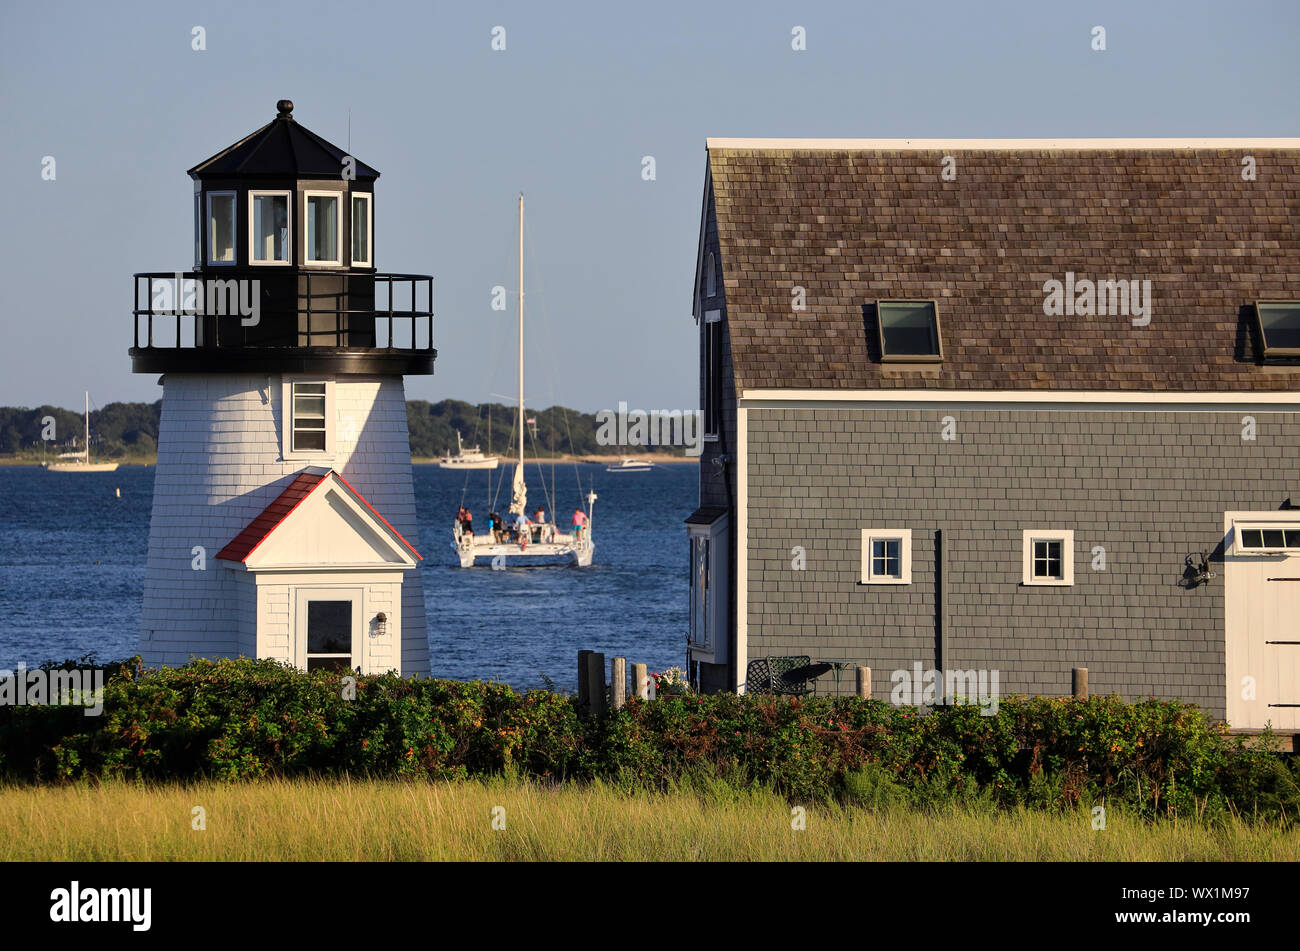 Hyannis Harbor Lighthouse aka Faro Bahía Lewis con un catamarán .Hyannis.Cape Cod.Massachusetts.EE.UU. Foto de stock